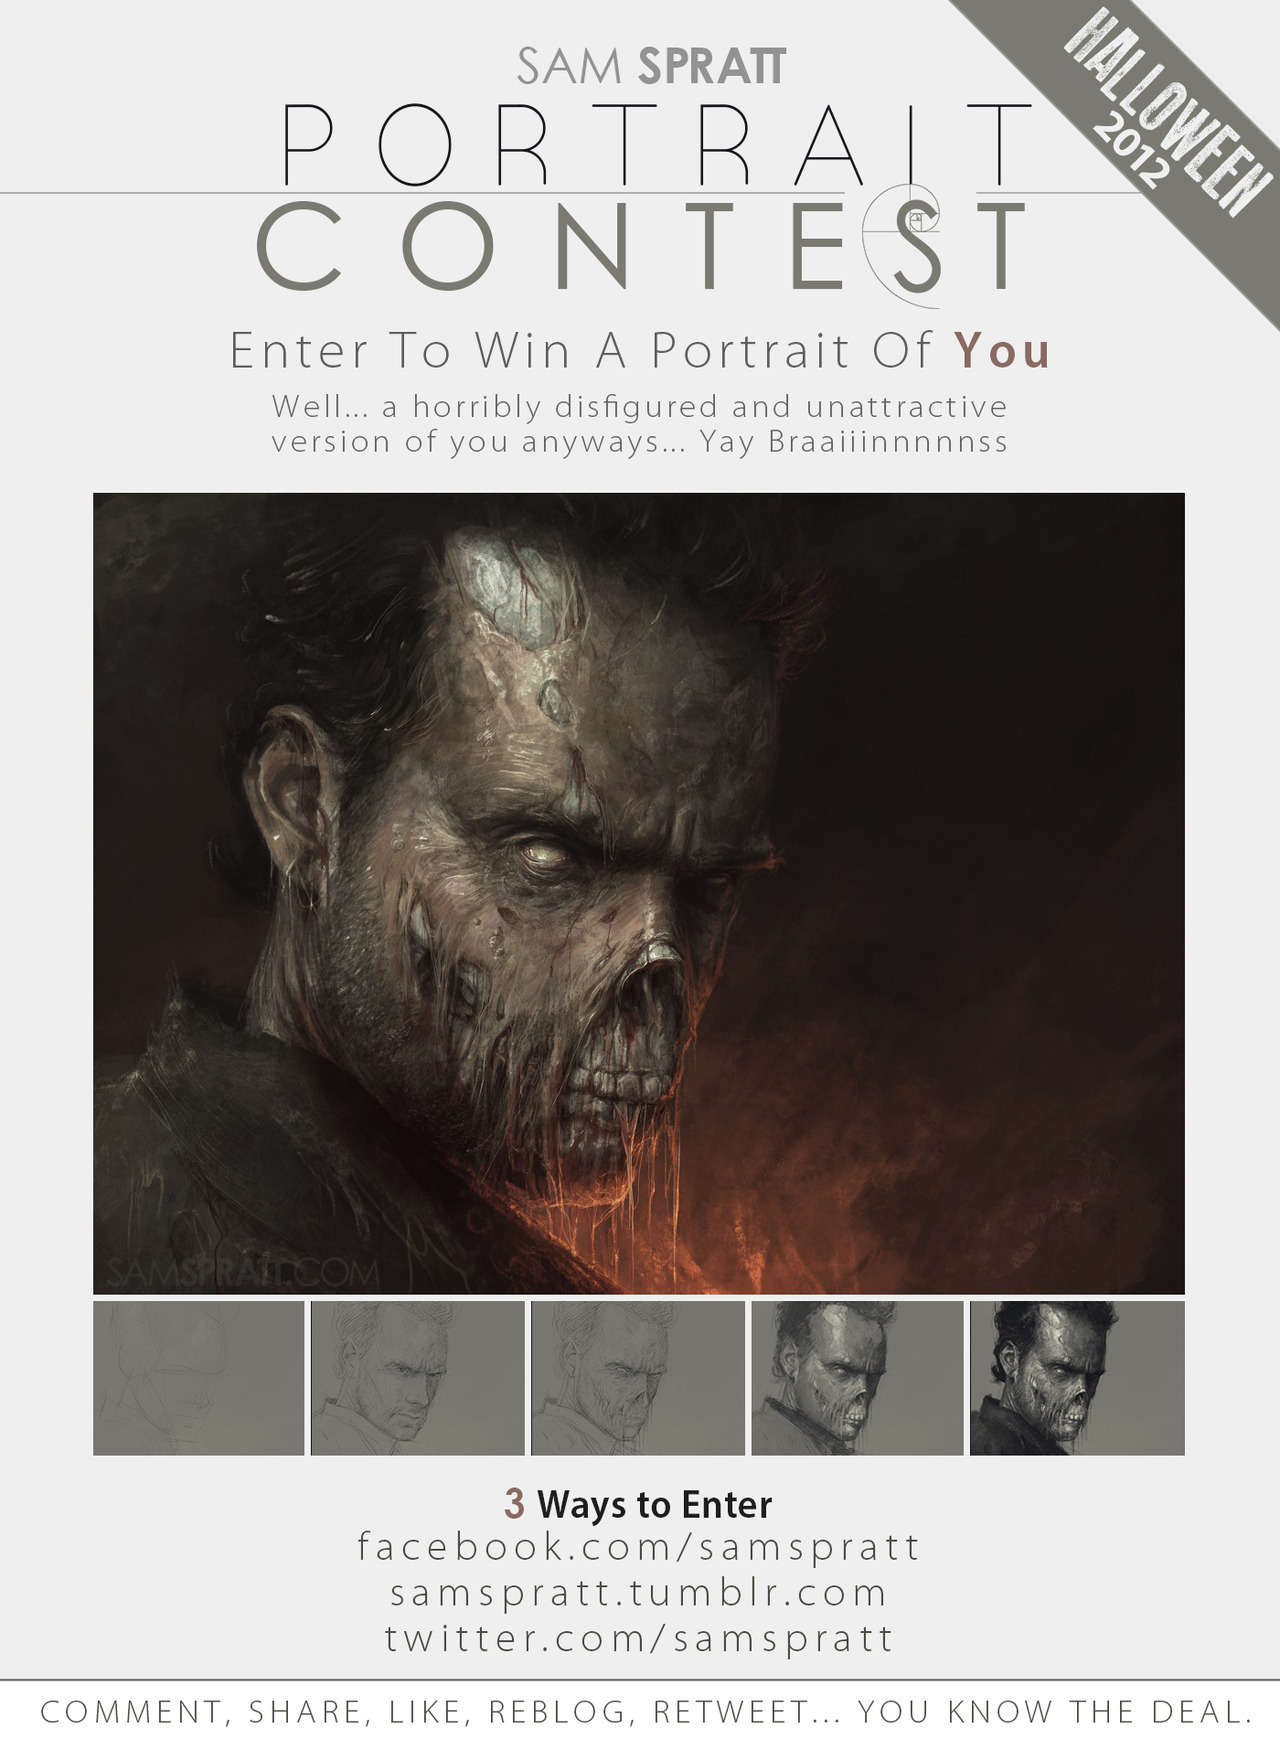 "justinrampage:  Sam Spratt: Sam Spratt's Halloween Portrait Contest! In brief: Likes and Reblogs of this image are each entries in the contest to win a portrait of you drawn by me. In slightly less brief:  To those new to this, that means that should you be the random winner, I would draw a portrait of your beautiful face (or someone's face you care about)… as a horrifically ugly, flesh-eating, undead walker-face. It's like winning the lottery! (except not at all like that…) That said, it is the best emotional preparation possible should you fall victim to the zombie apocalypse and run (walk slowly) across a mirror in the wreckage of your once beautiful town. (I will also draw you as anything halloween/horror themed, but the undead are a favorite). Doing each of the following counts as an entry: Facebook: Comment and/or Share this image >HERE< Tumblr: Like and/or Reblog this image Twitter: Following @samspratt and tweeting ""Entering to win a portrait of myself drawn as the undead by @samspratt! http://on.fb.me/RPNehj"" Contest closes on Sunday Oct. 28th at midnight EST PS: Yes, that's a drawing of The Walking Dead's Rick Grimes as a Walker Halloween Portrait Contest! by Sam Spratt (Store) (Facebook) (Twitter)"